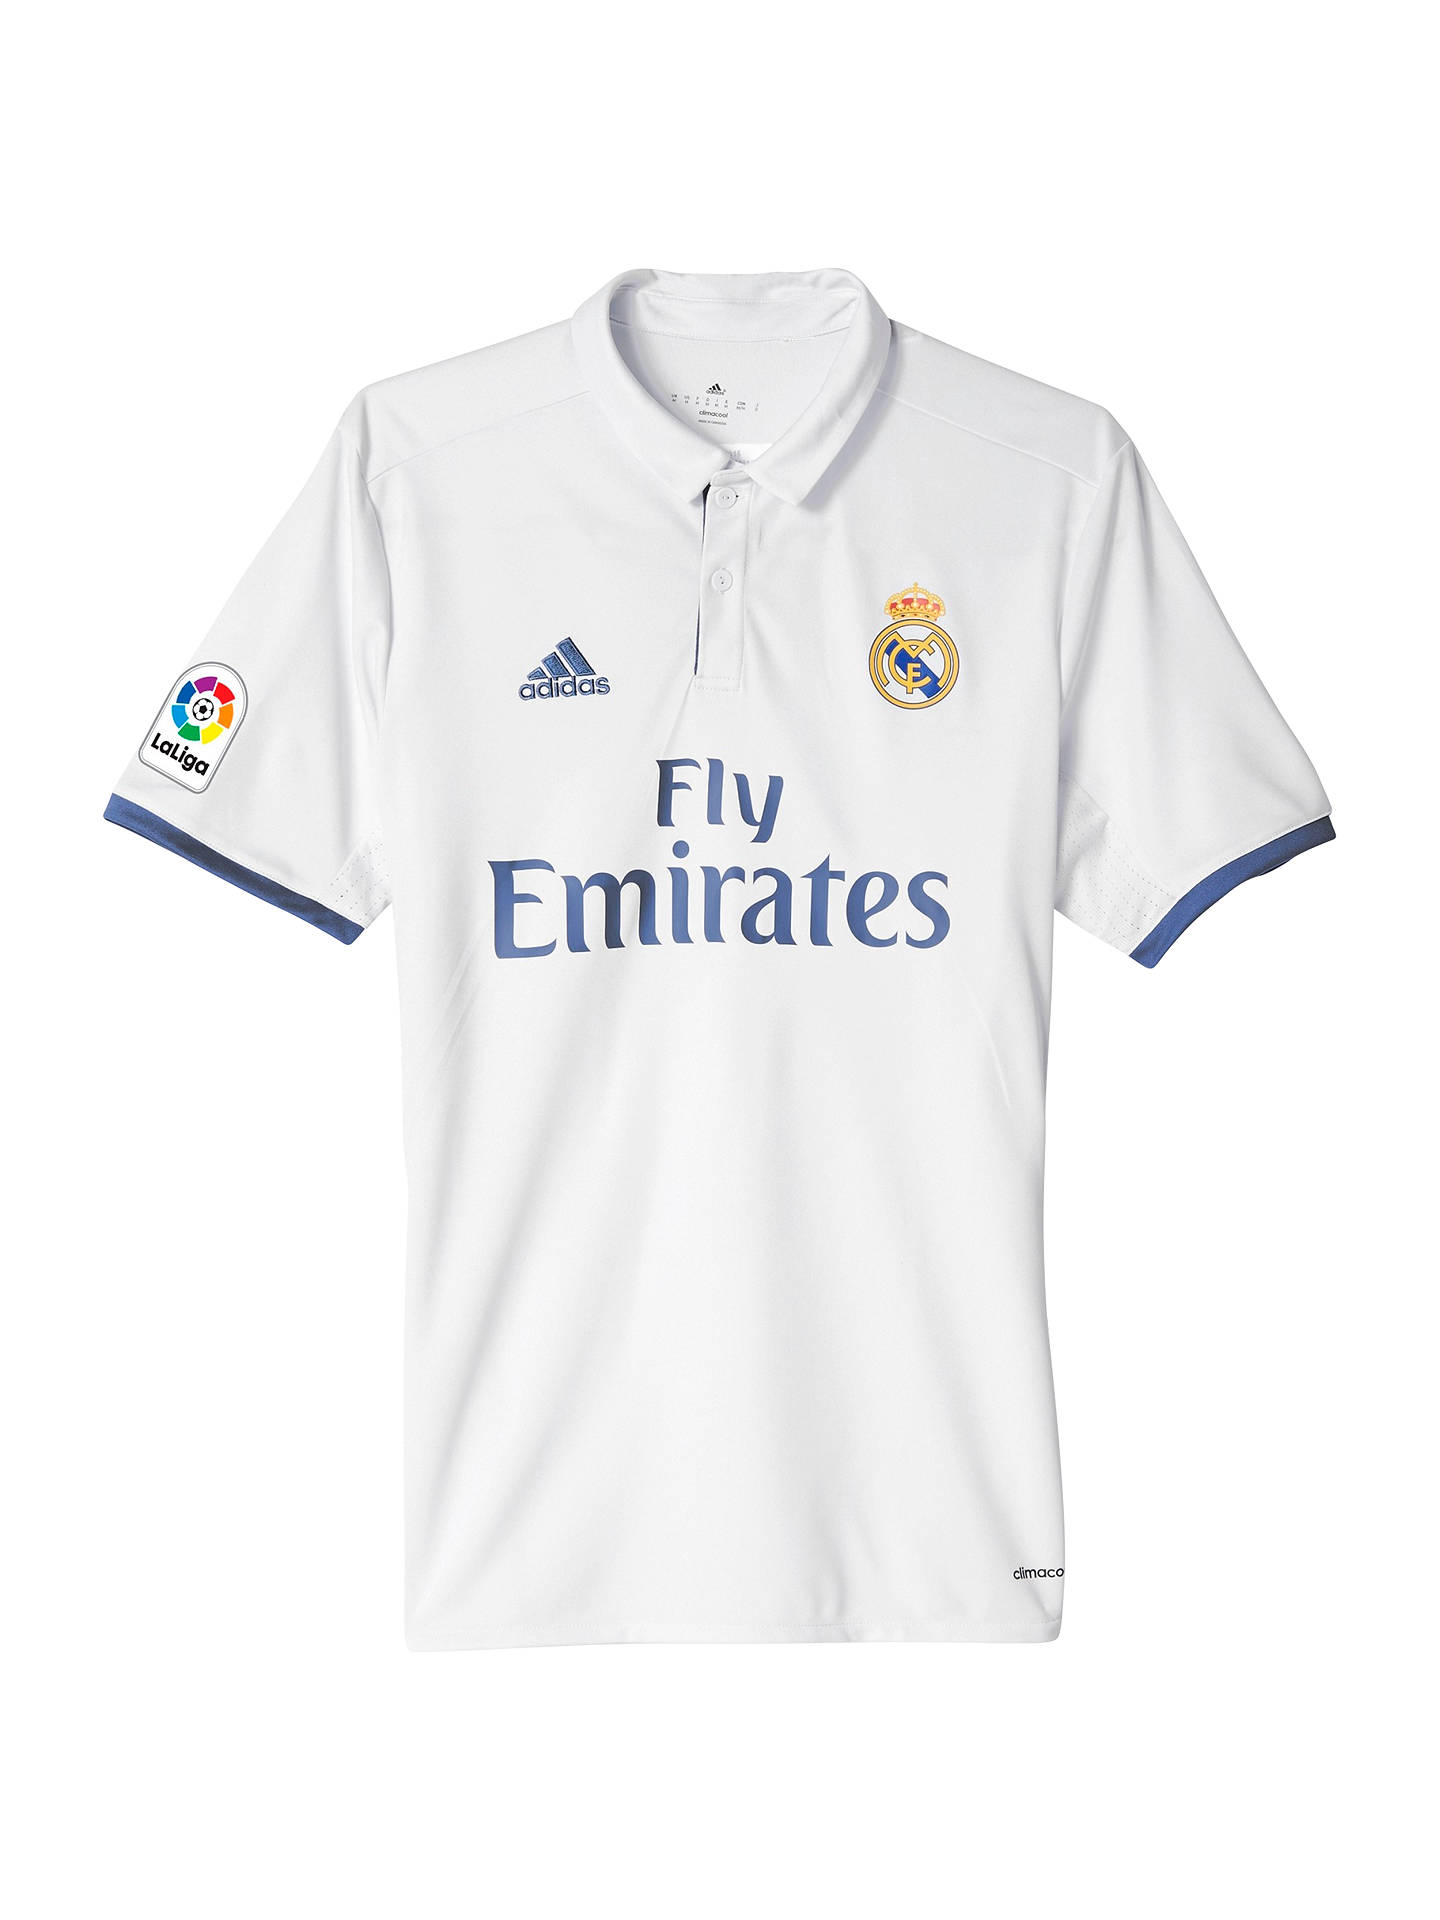 3ea2c9b1d Buy Adidas 2016 17 Real Madrid Home Football Shirt